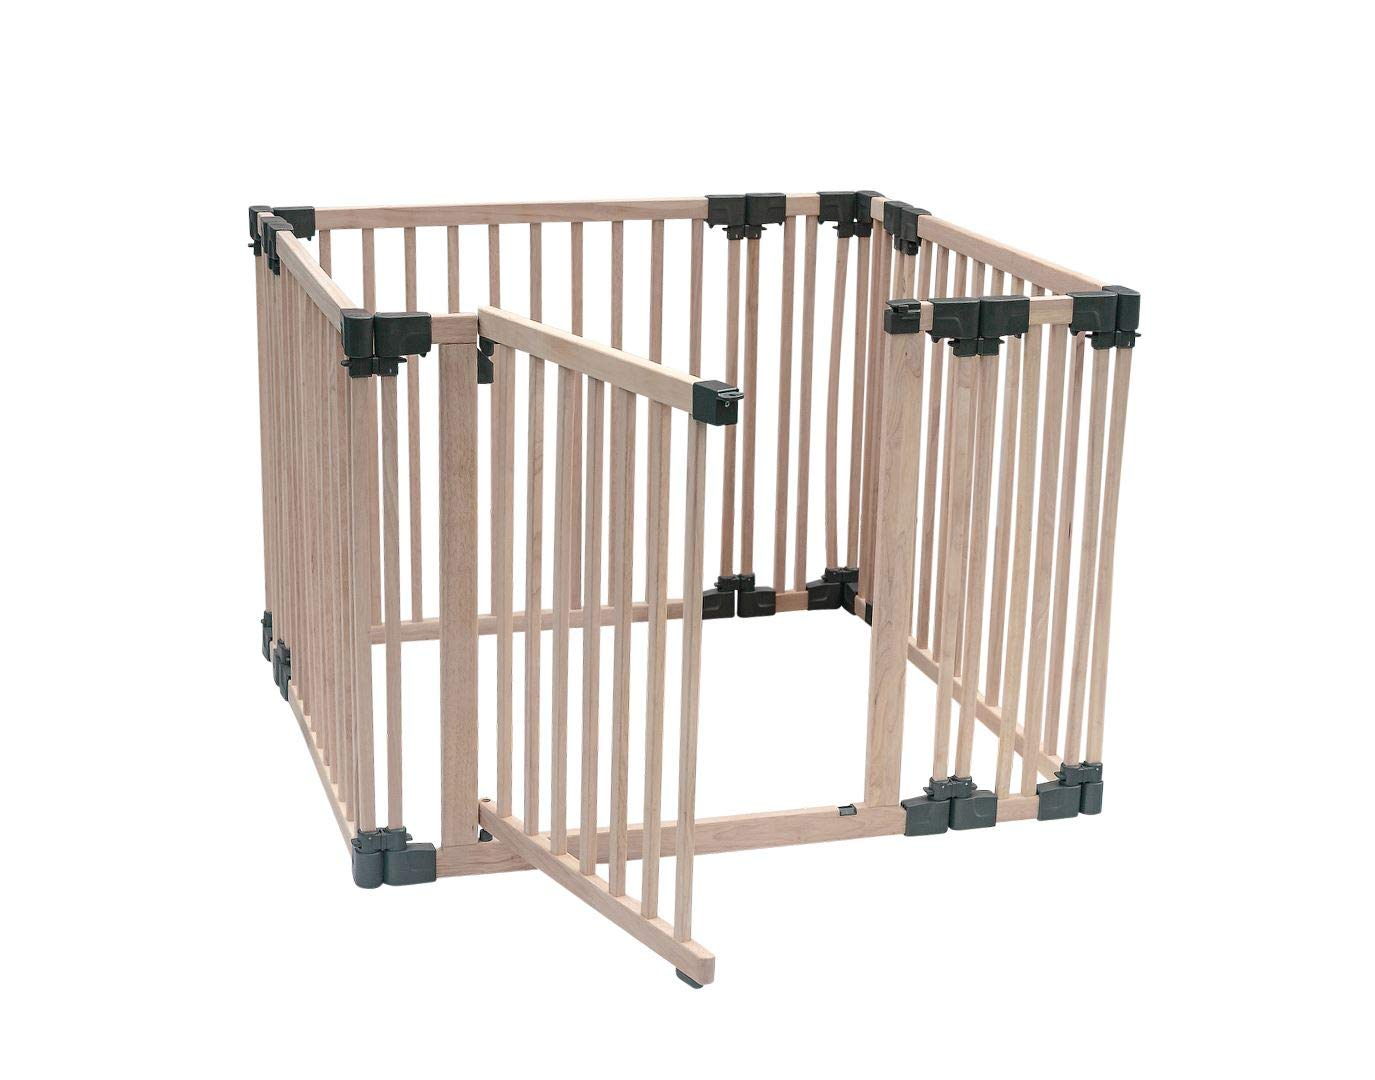 Safetots Play Pen Wooden All Sizes (Square) Safetots This configuration is complete with 1x 80cm gate panel, 3x 80cm panels and 4x 20cm panels. Made from premium grade wood designed to compliment all home interiors. Extra Wide Door Section for Easy Access, with simple slide and lift opening mechanism. 2